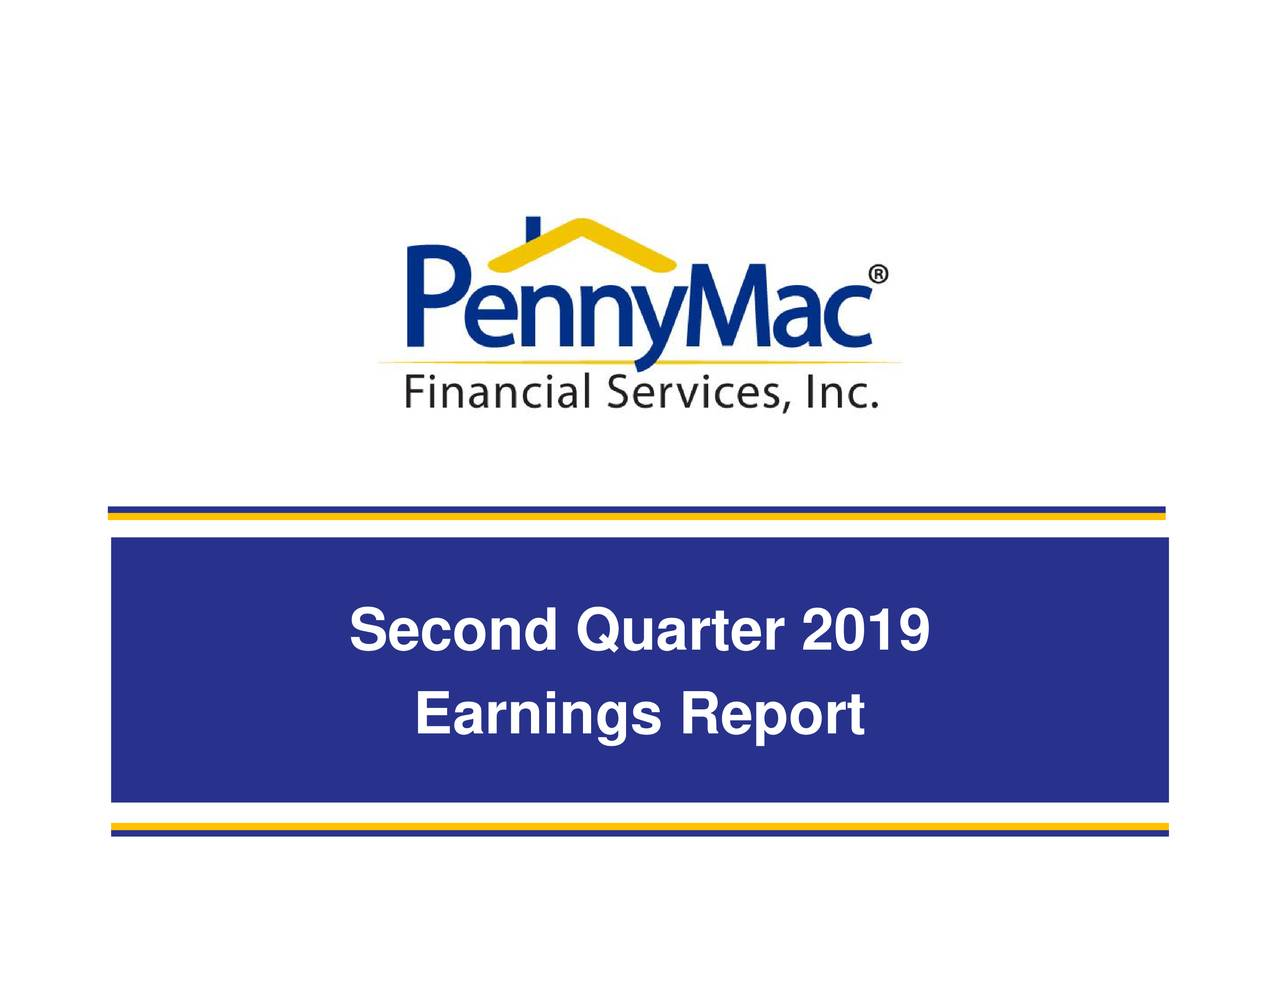 Earnings Report